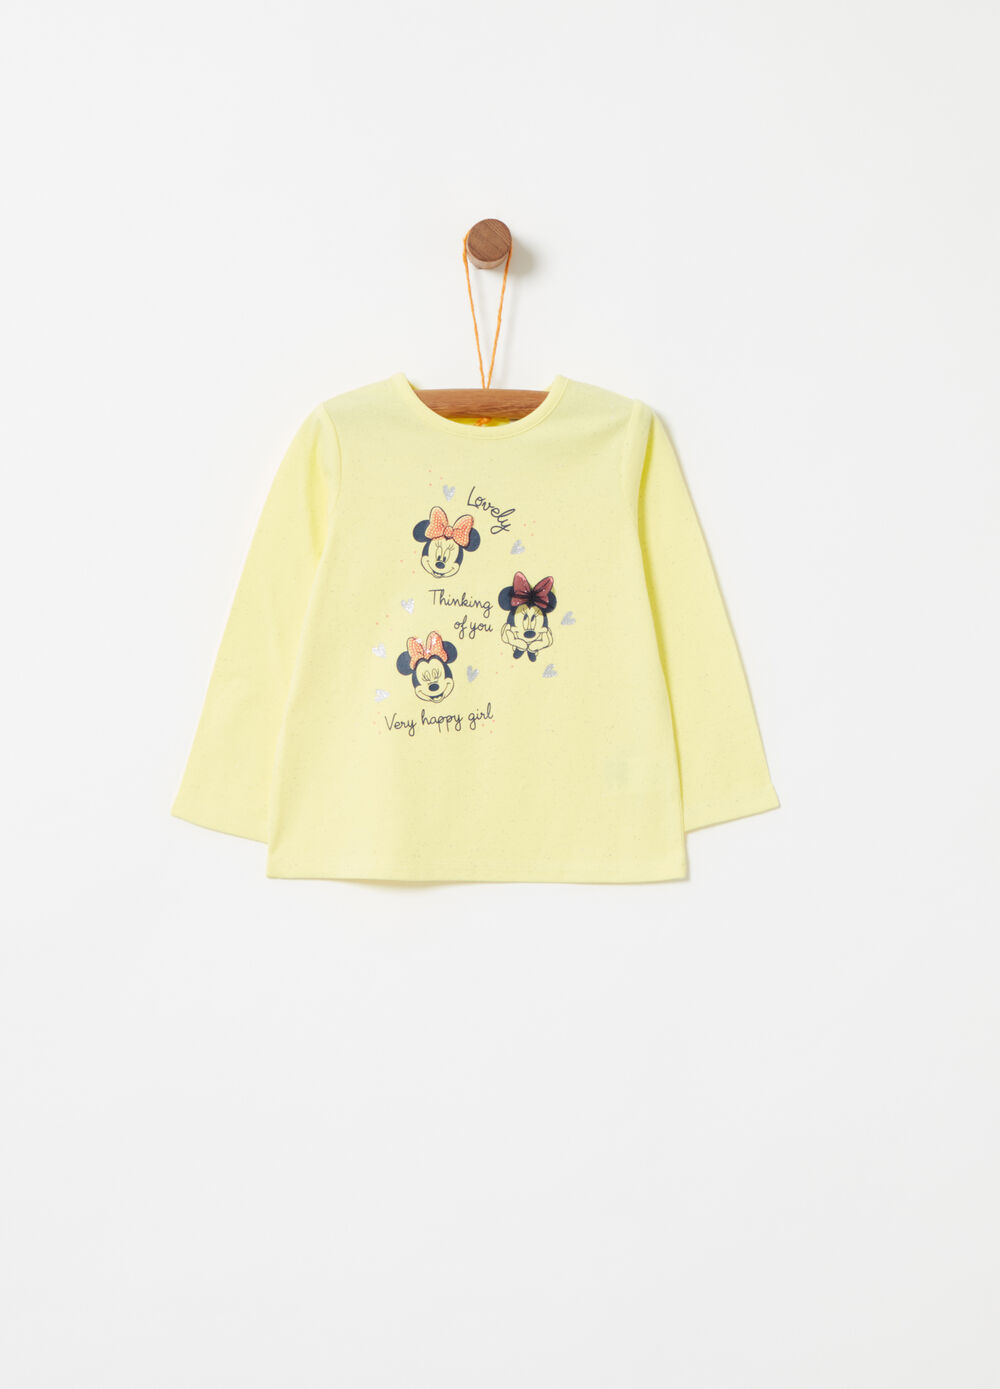 T-shirt with Minnie Mouse glitter print and sequins